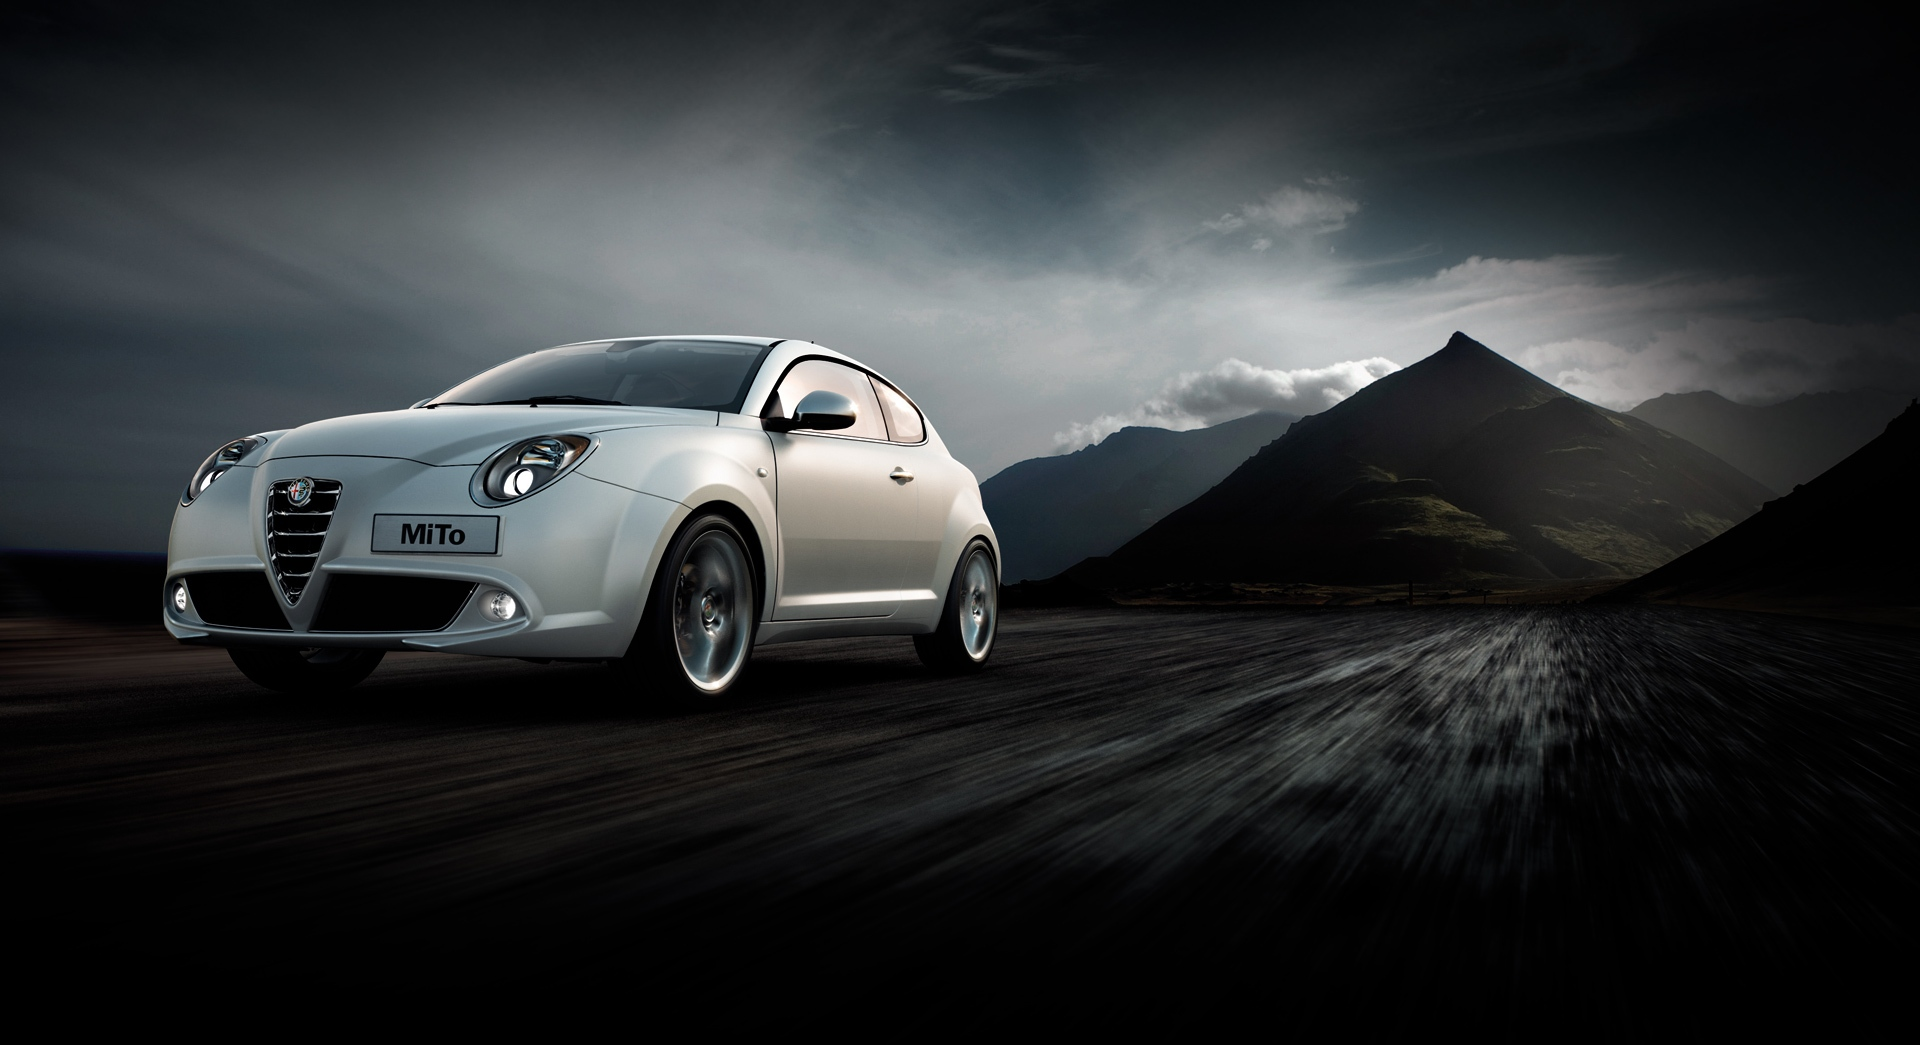 alfa romeo mito wallpaper dark